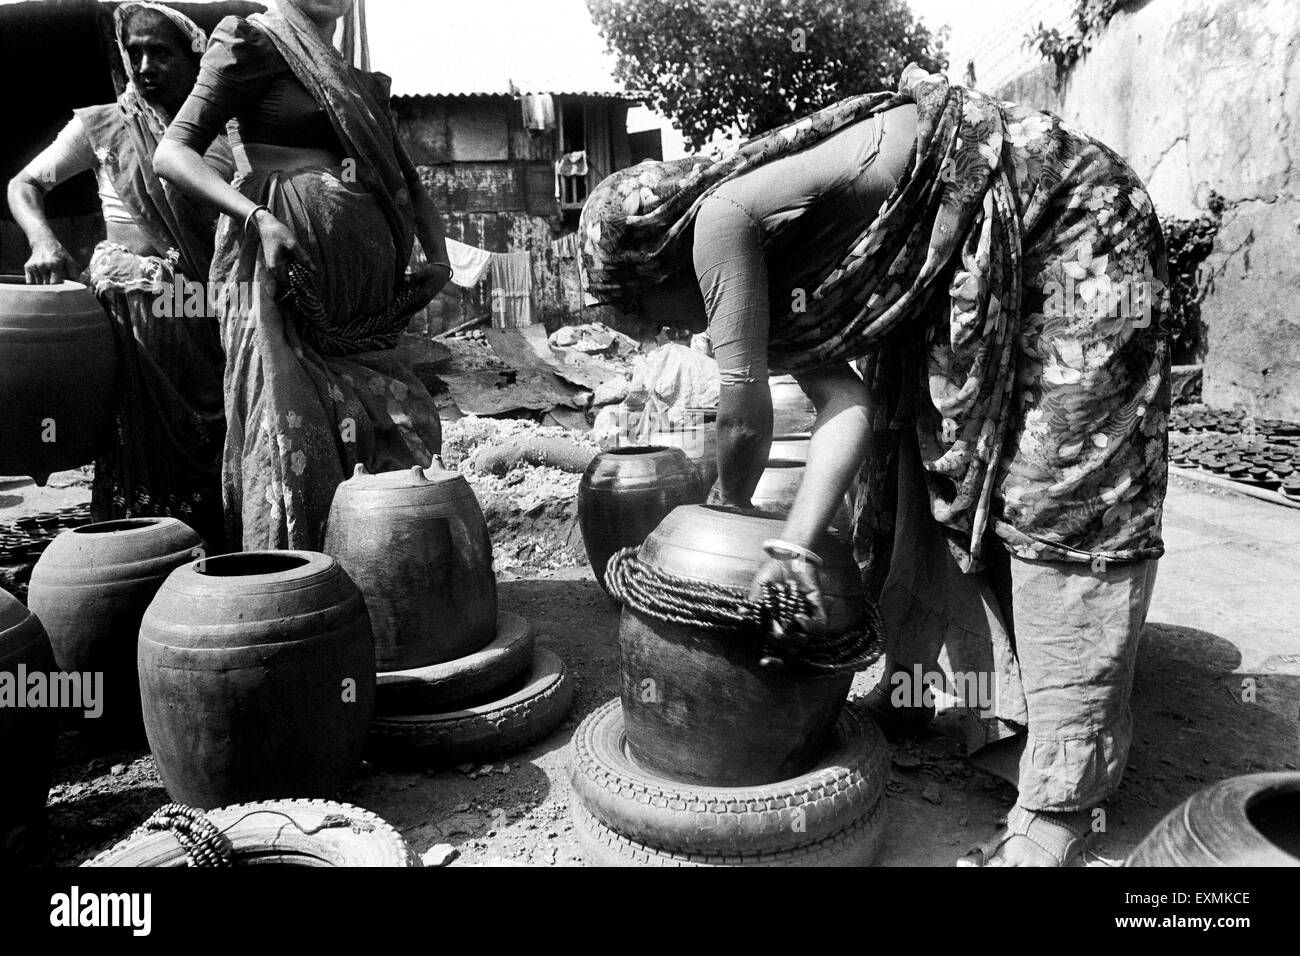 Women give finishing touches to earthenware baked clay vessels at Kumbhaewada ; Dharavi Mumbai - Stock Image